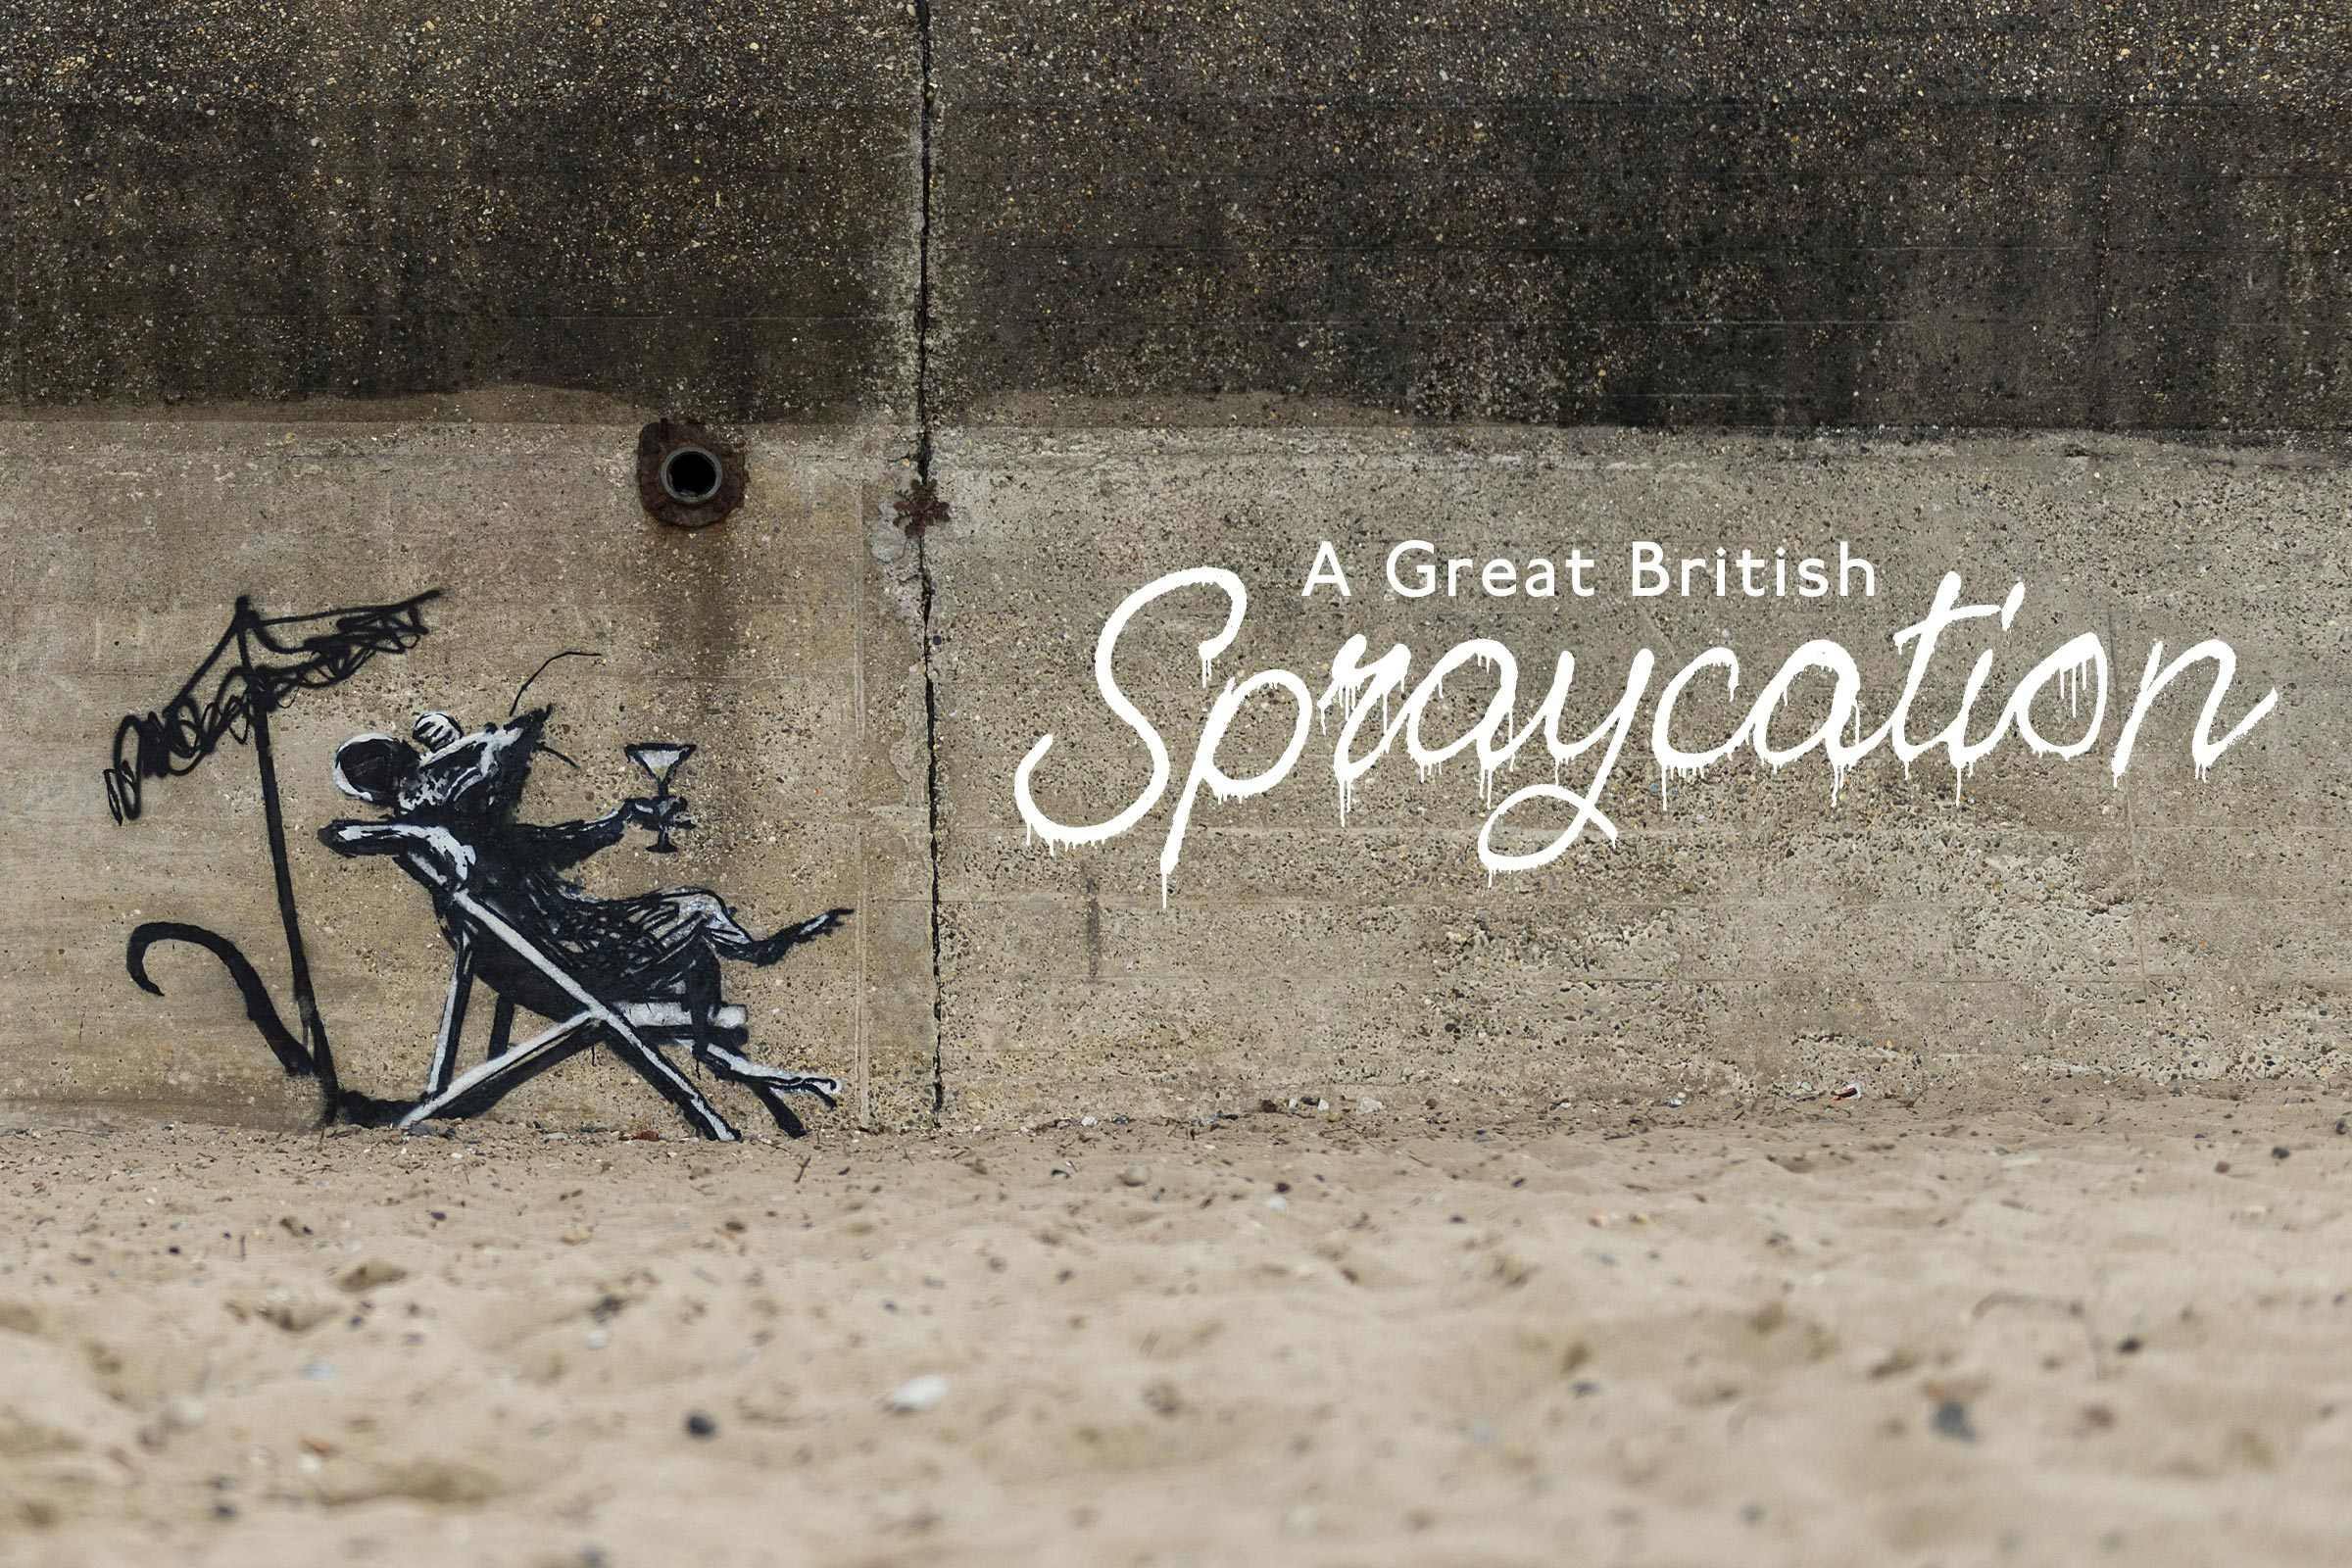 Banksy Confirms He Was Behind a Spree of New Murals That Popped Up in Coastal England Towns Earlier This Week